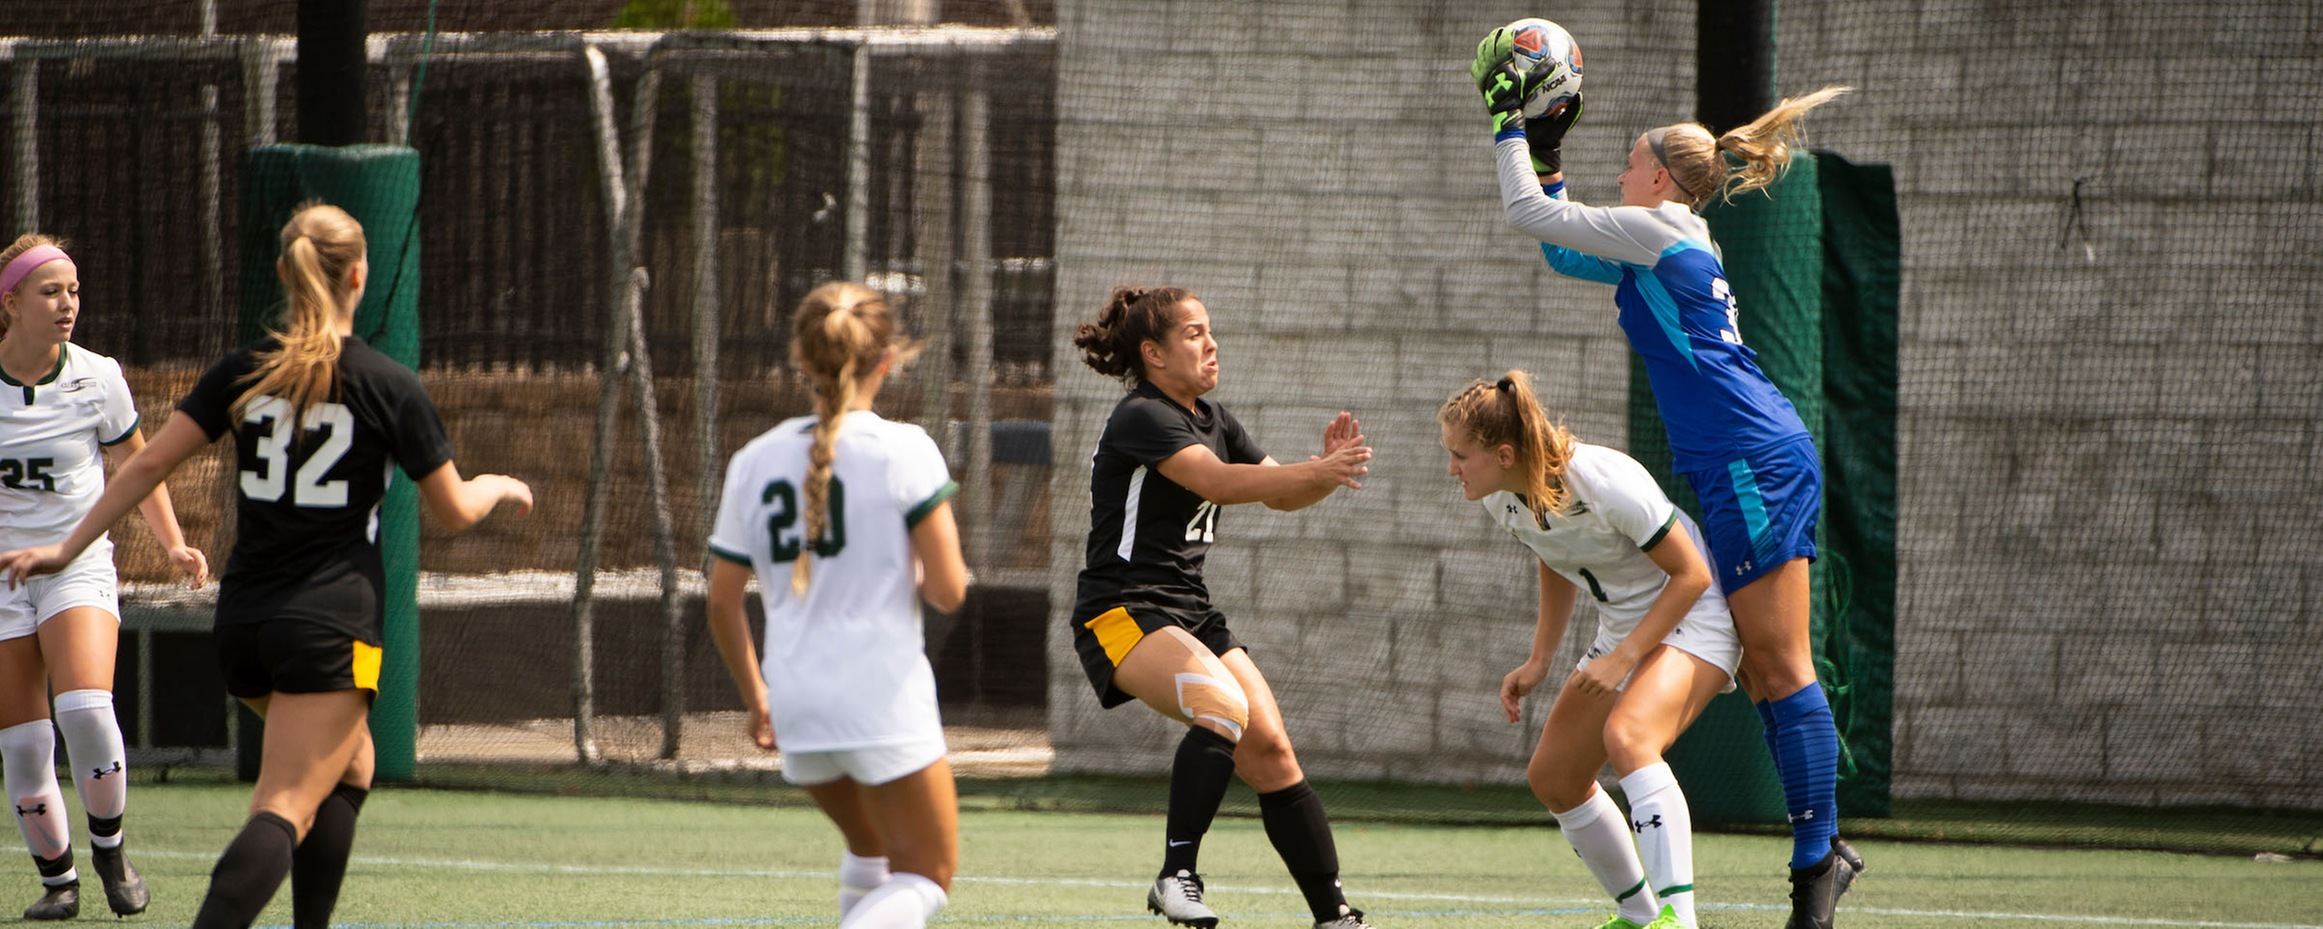 Caffrey Records 11 Saves in Scoreless Tie at Catholic